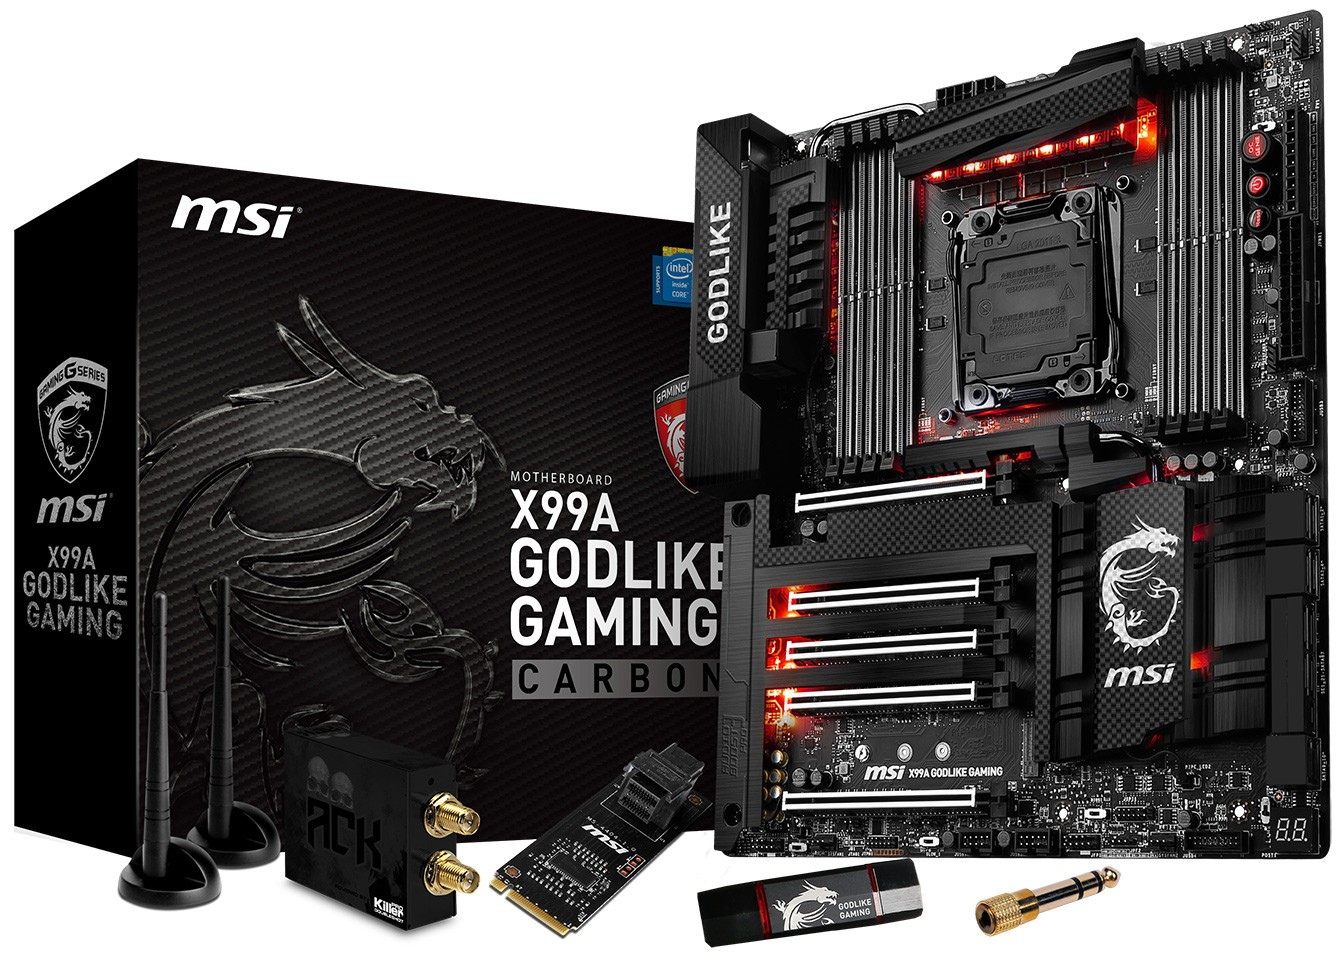 MSI Announces the X99A GODLIKE Gaming Carbon Motherboard